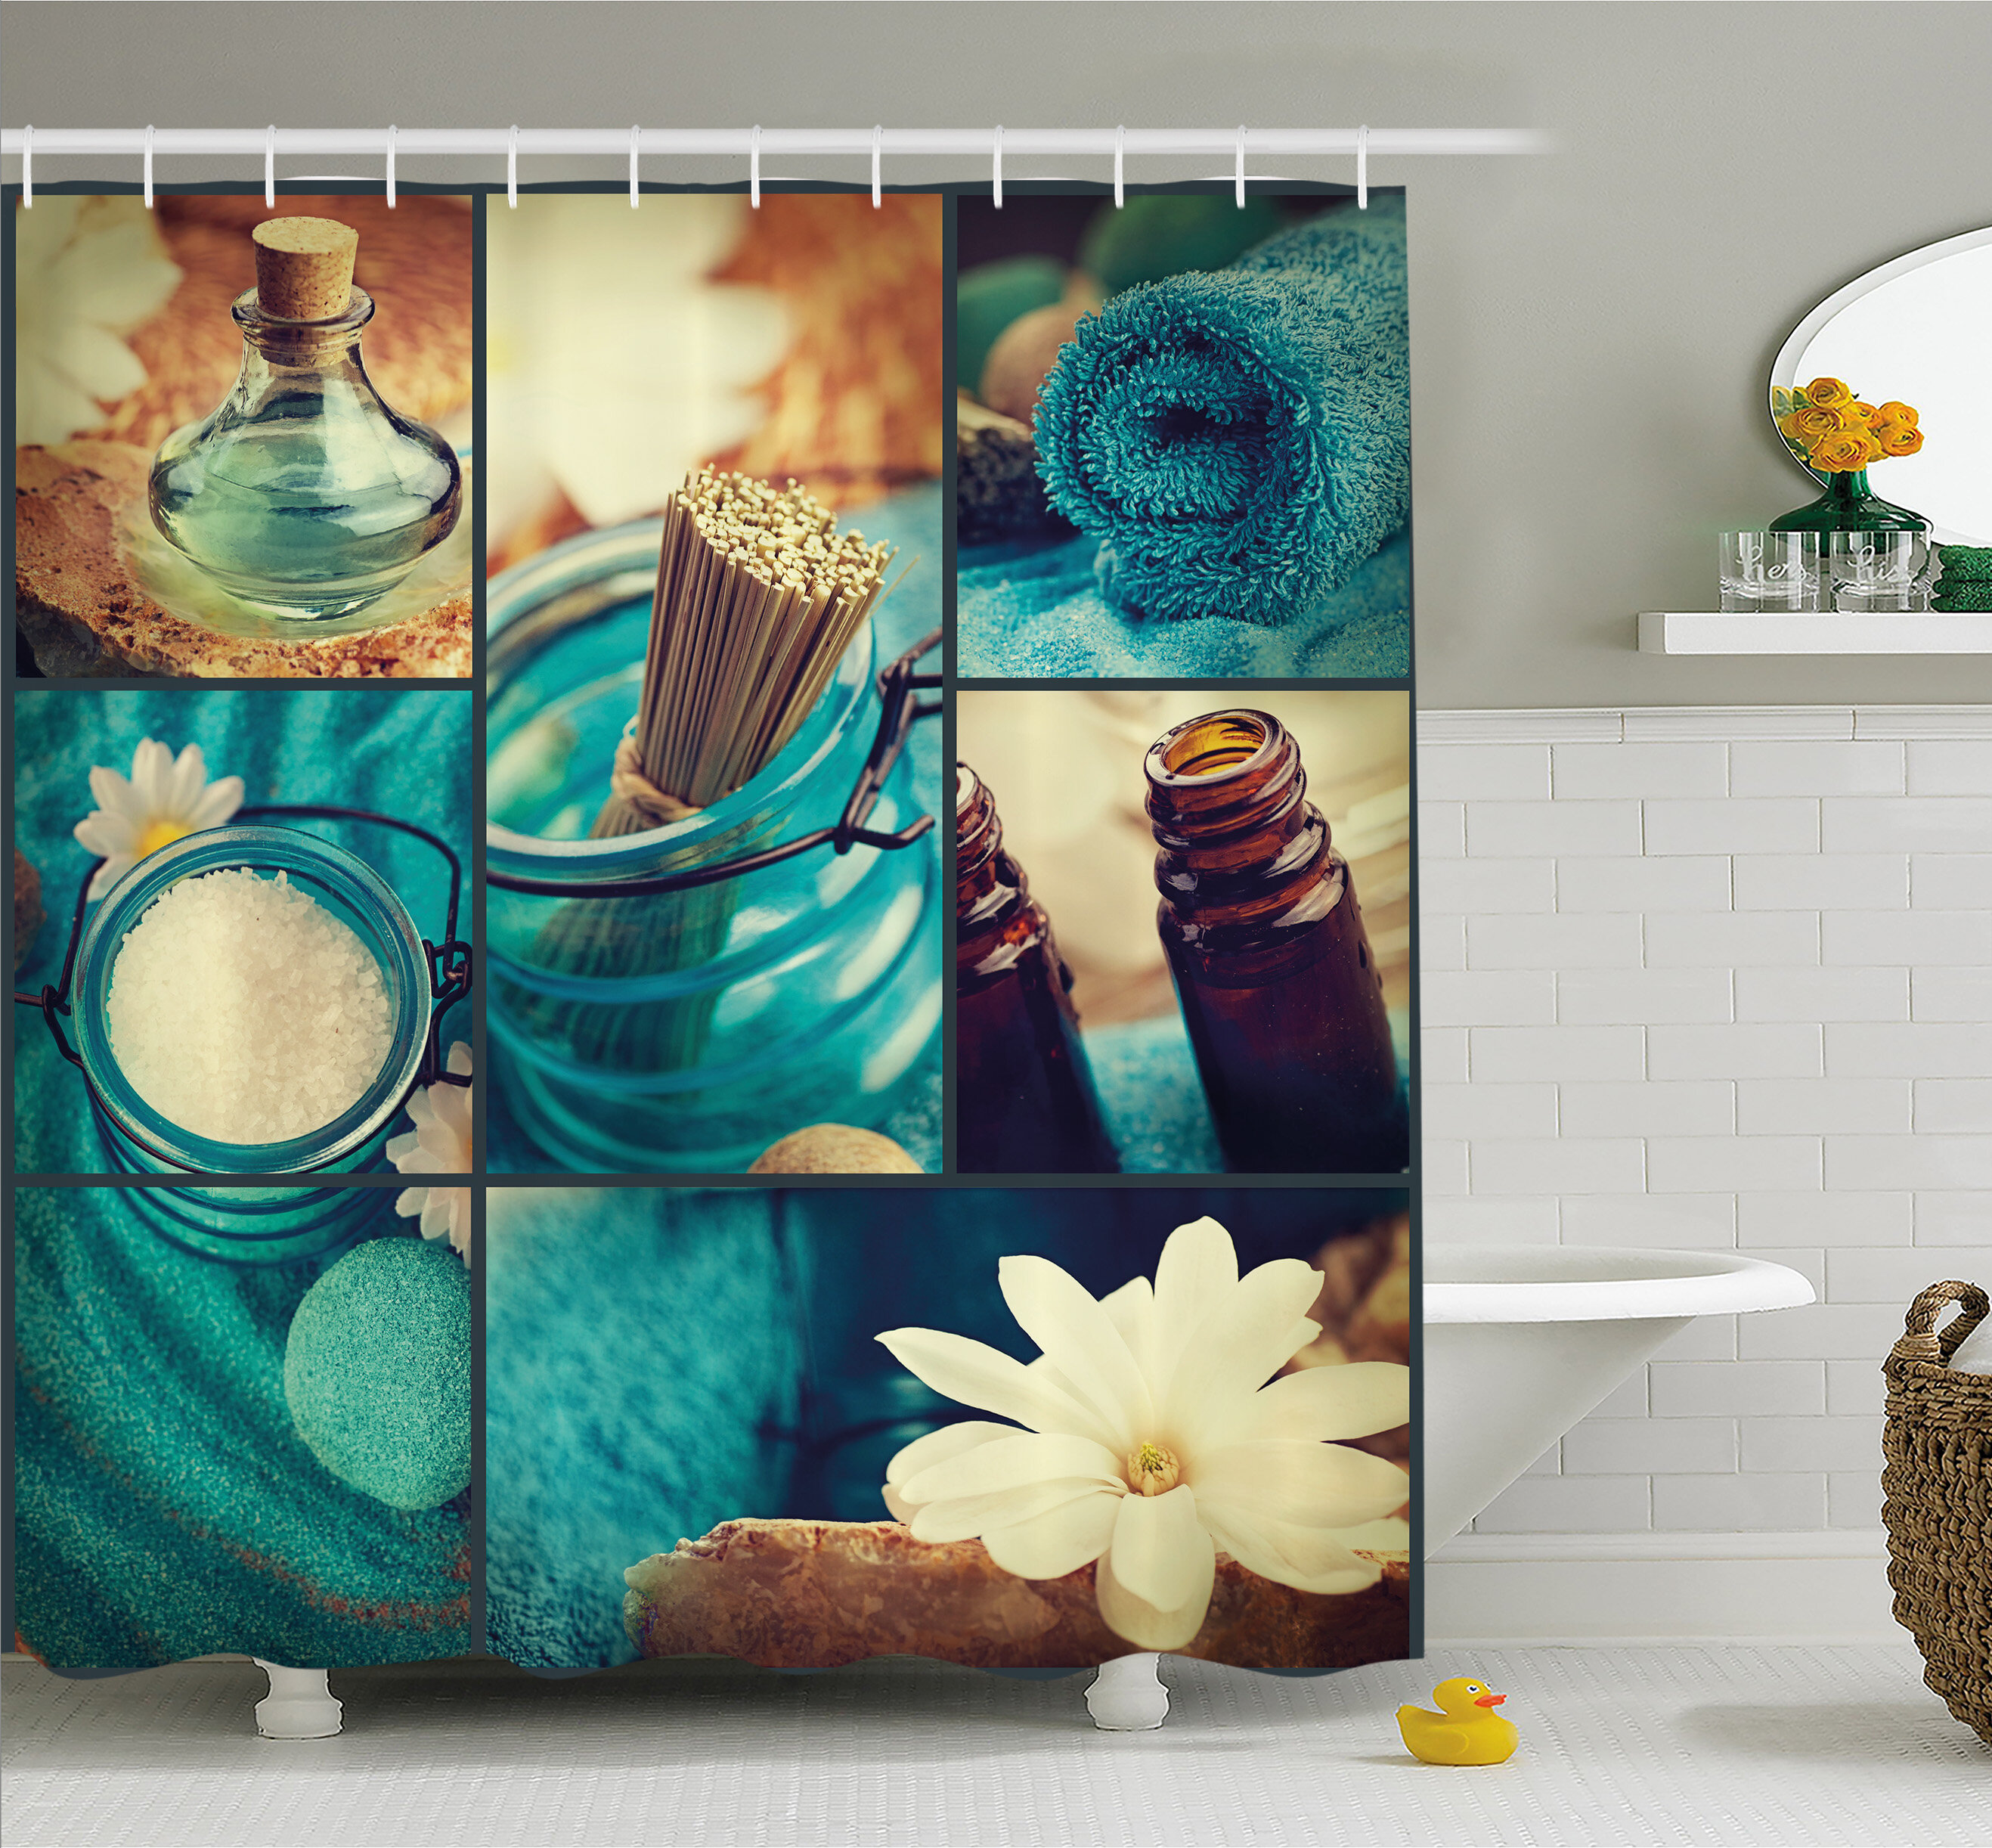 Ambesonne Spa Themed Daisies Scents Towels And Incense Artwork Collage Shower Curtain Set